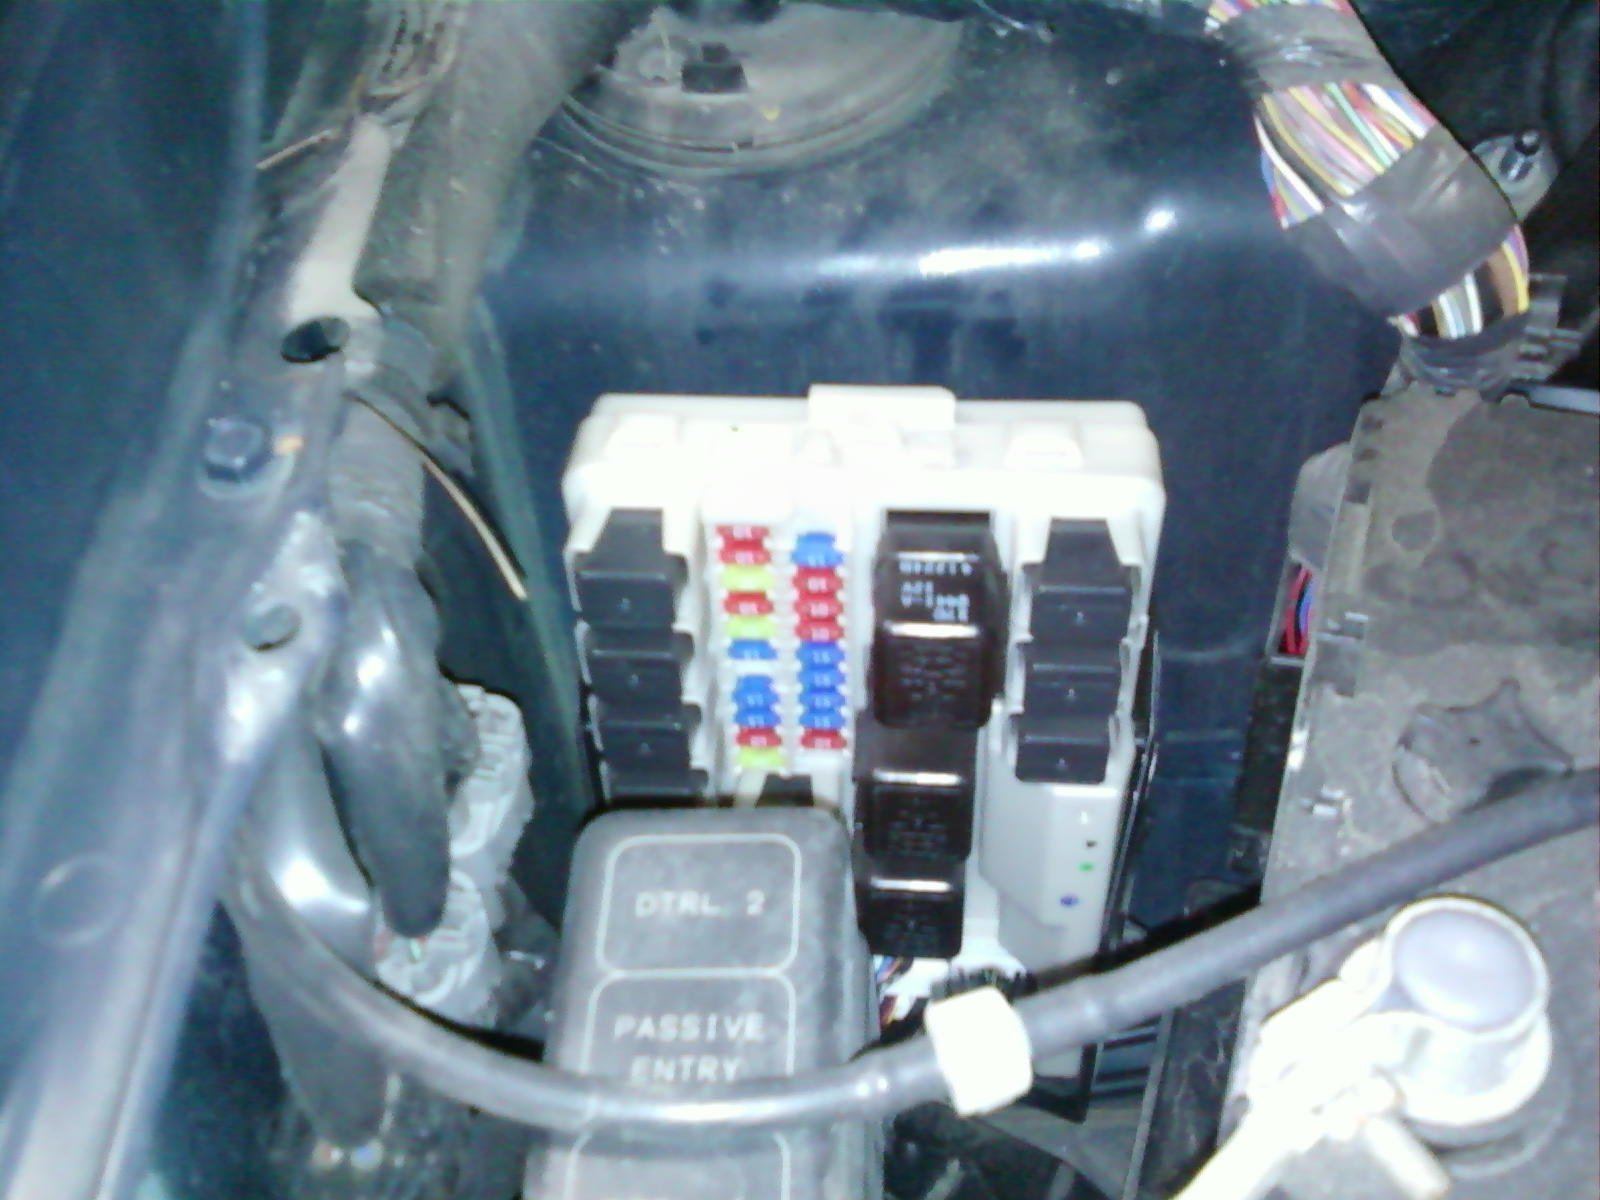 Discussion T4231 ds547618 further 87rz0 Buick Park Avenue 94 Buick Park Ave Stall Once Every as well Page4 also Crownvic   drock96marquis images fuses 98 02tcENGfuses moreover Chrysler Van Fuse Box 2005 Town Country. on 01 dodge grand caravan fuses location